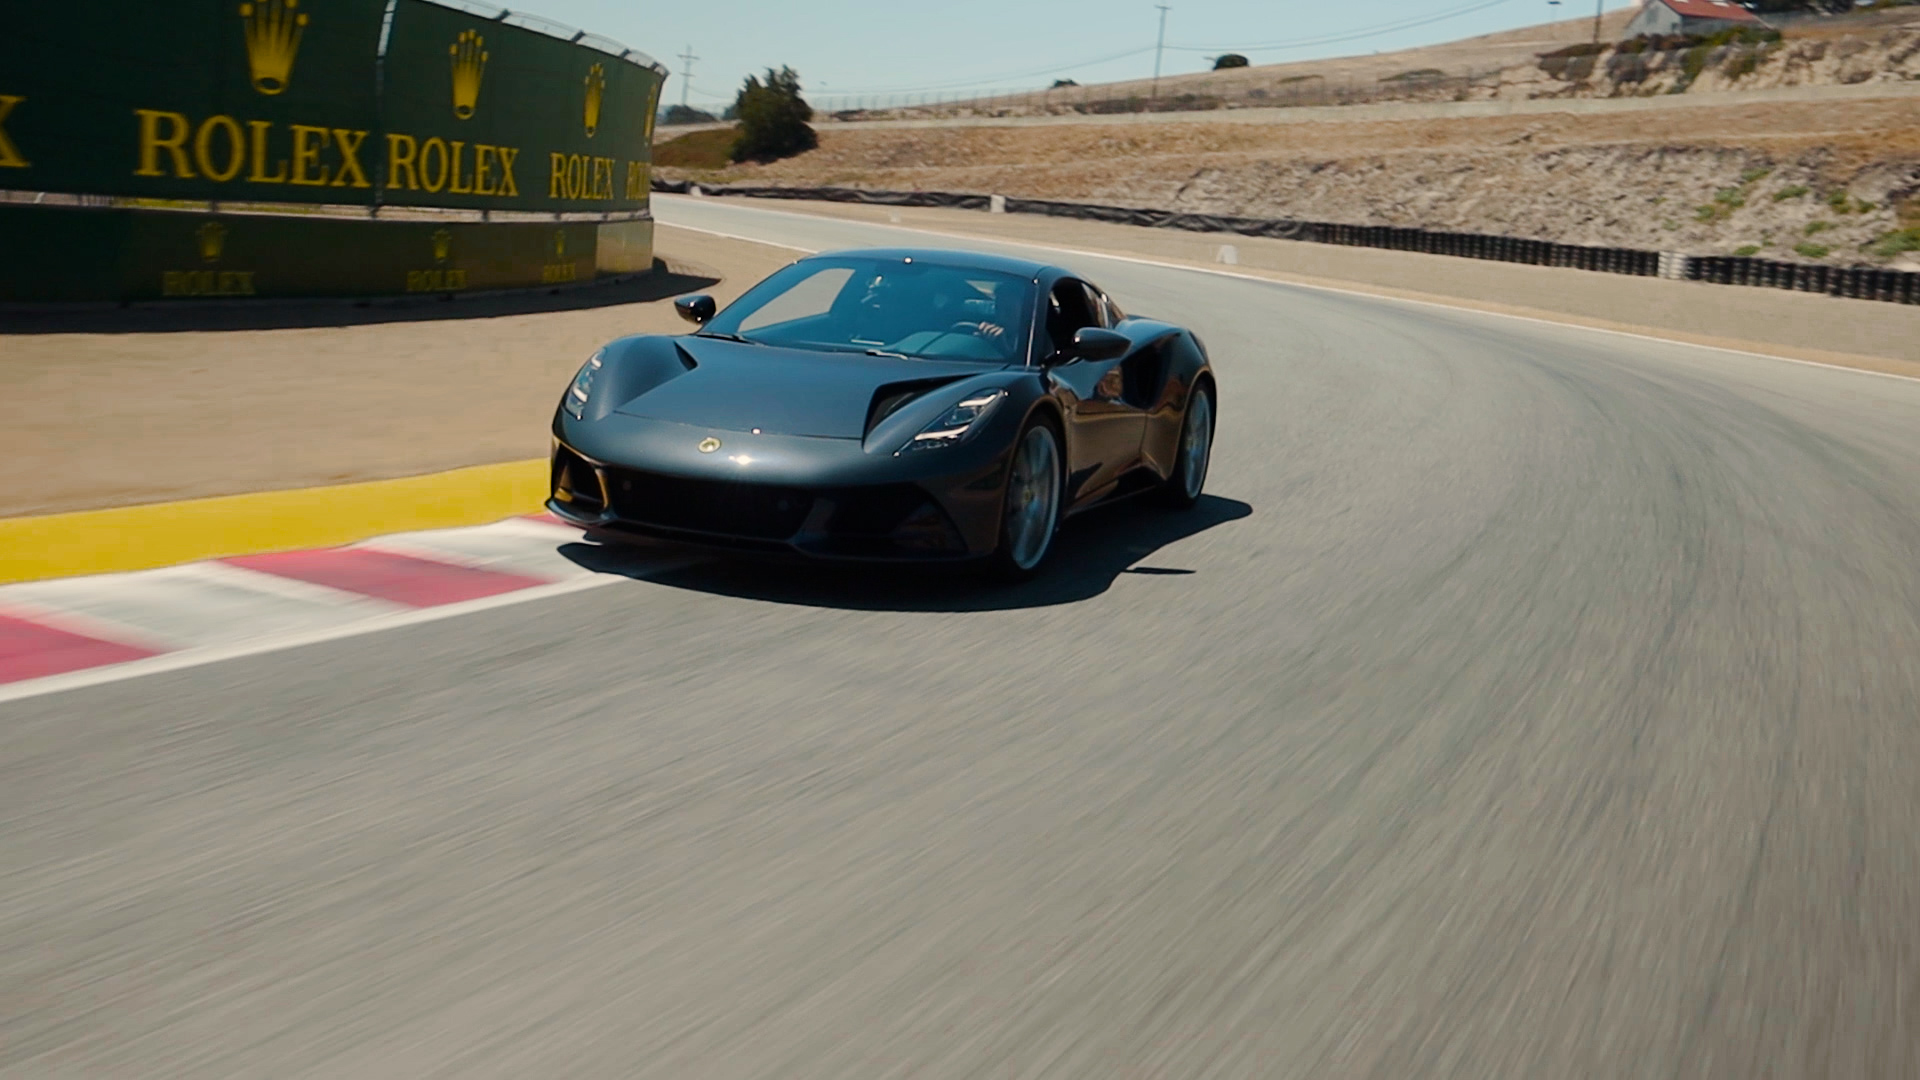 Lotus Emira Shadow Grey two door sports car in on the Laguna Seca race track driven by Jenson Button